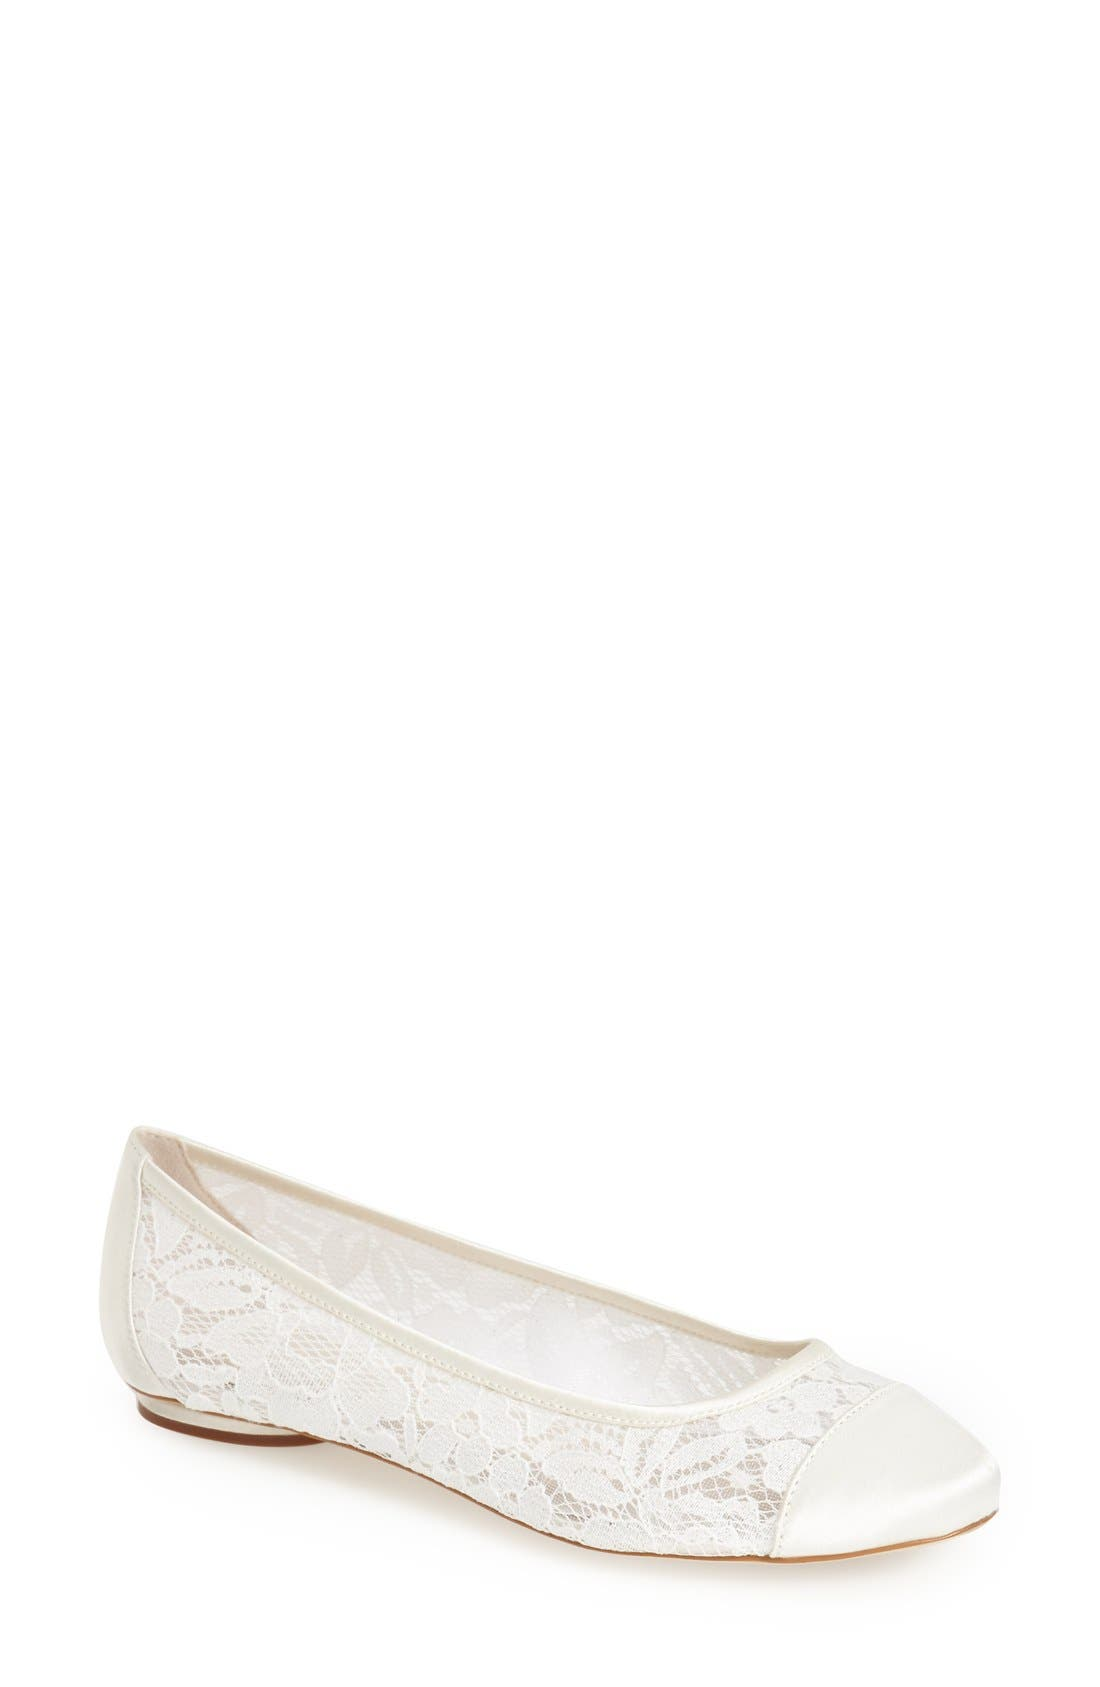 pink paradox london 'Sweetie' Lace Cap Toe Ballet Flat (Women)